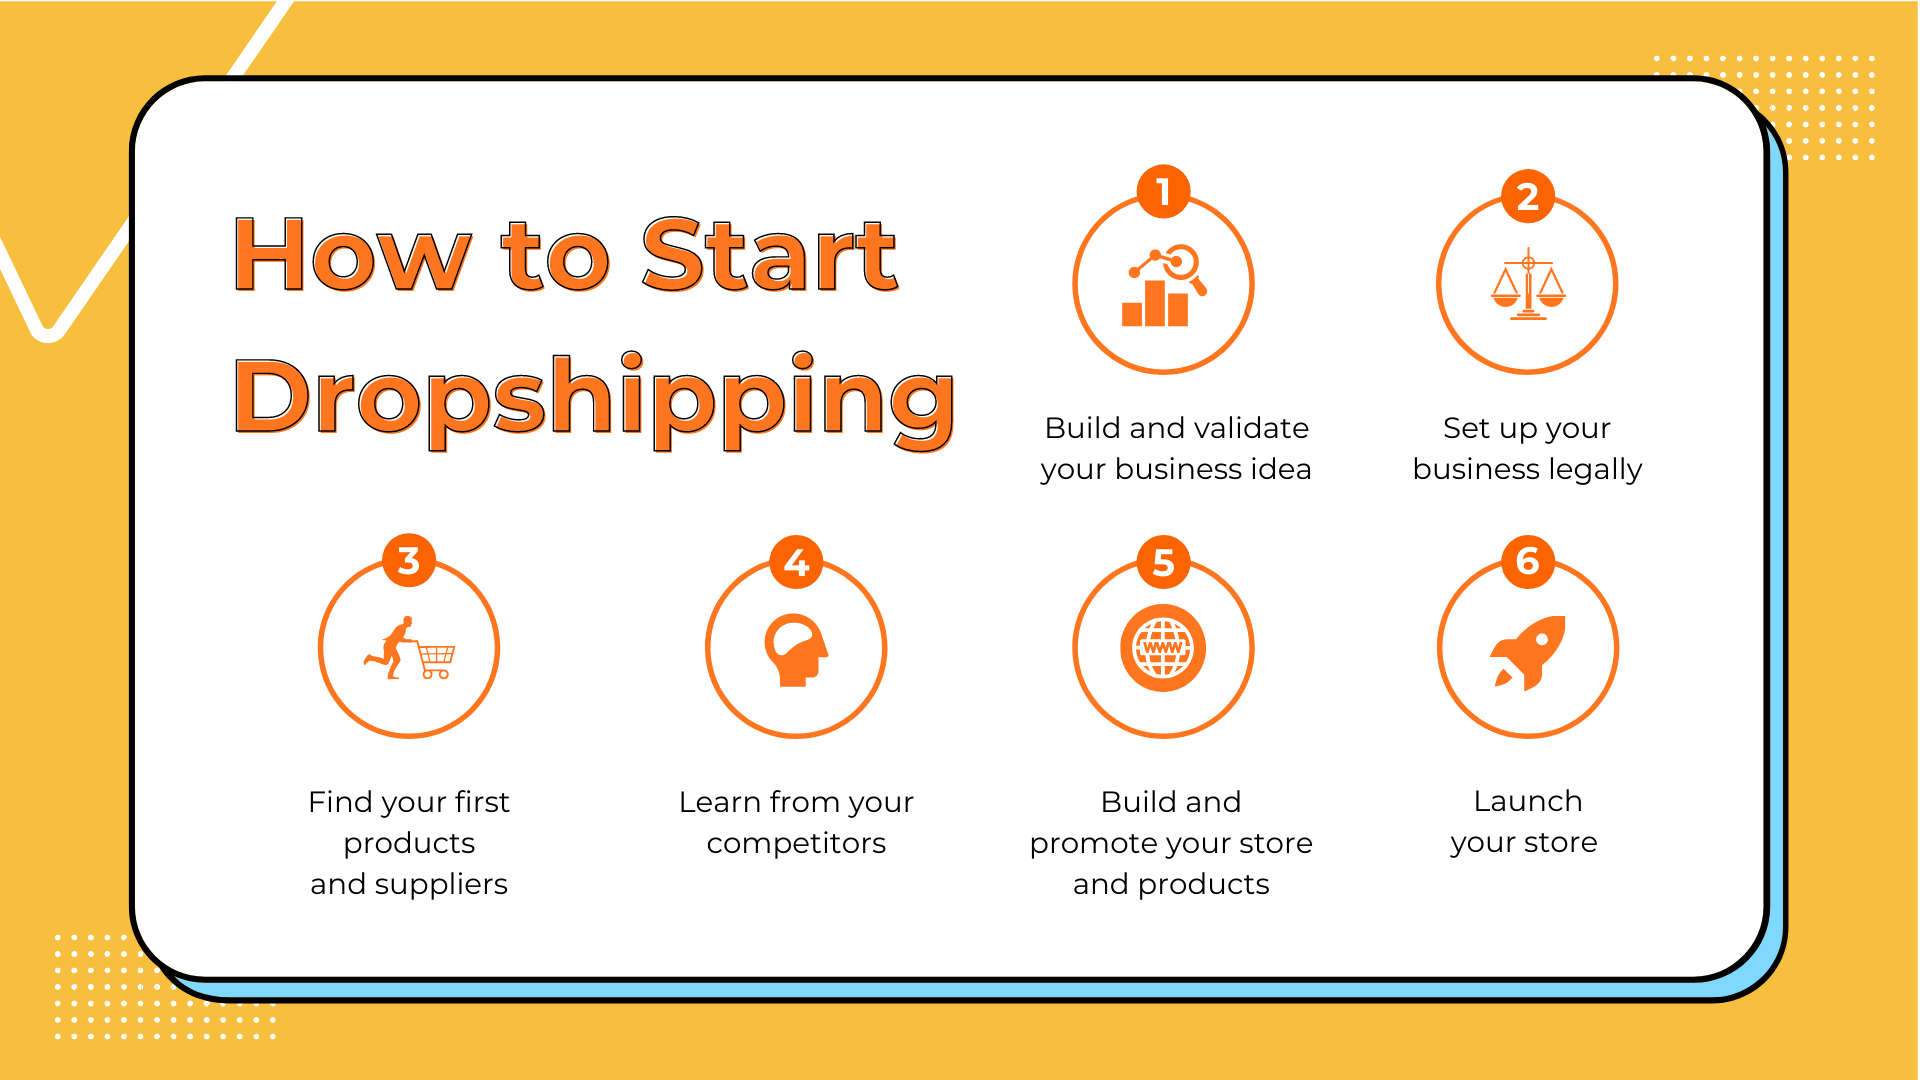 Steps on how to start a dropshipping business by LeapVista